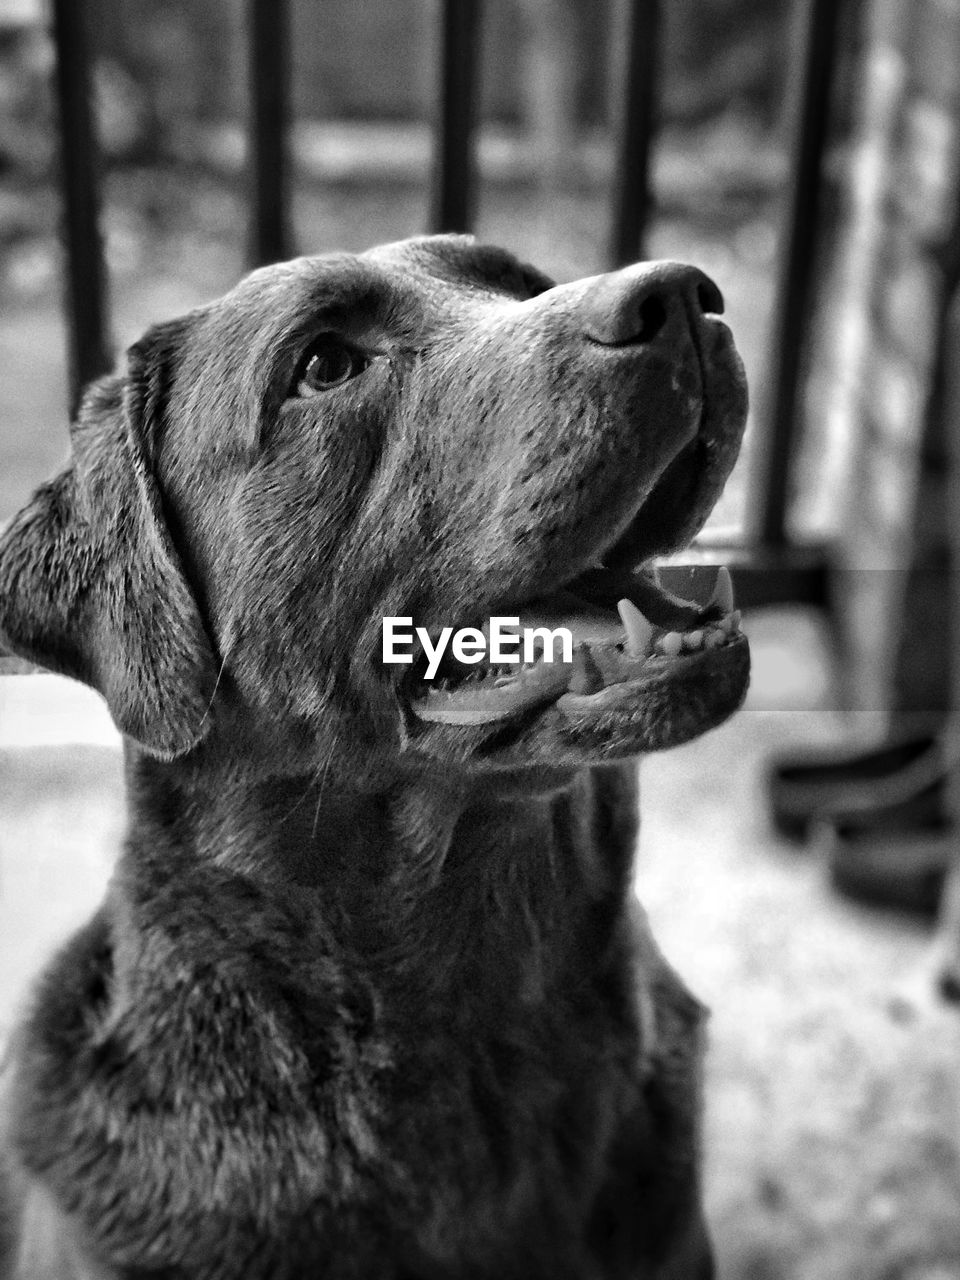 one animal, dog, canine, animal themes, pets, domestic animals, domestic, animal, mammal, vertebrate, looking, focus on foreground, close-up, looking away, no people, animal body part, day, mouth, mouth open, animal head, purebred dog, animal mouth, aggression